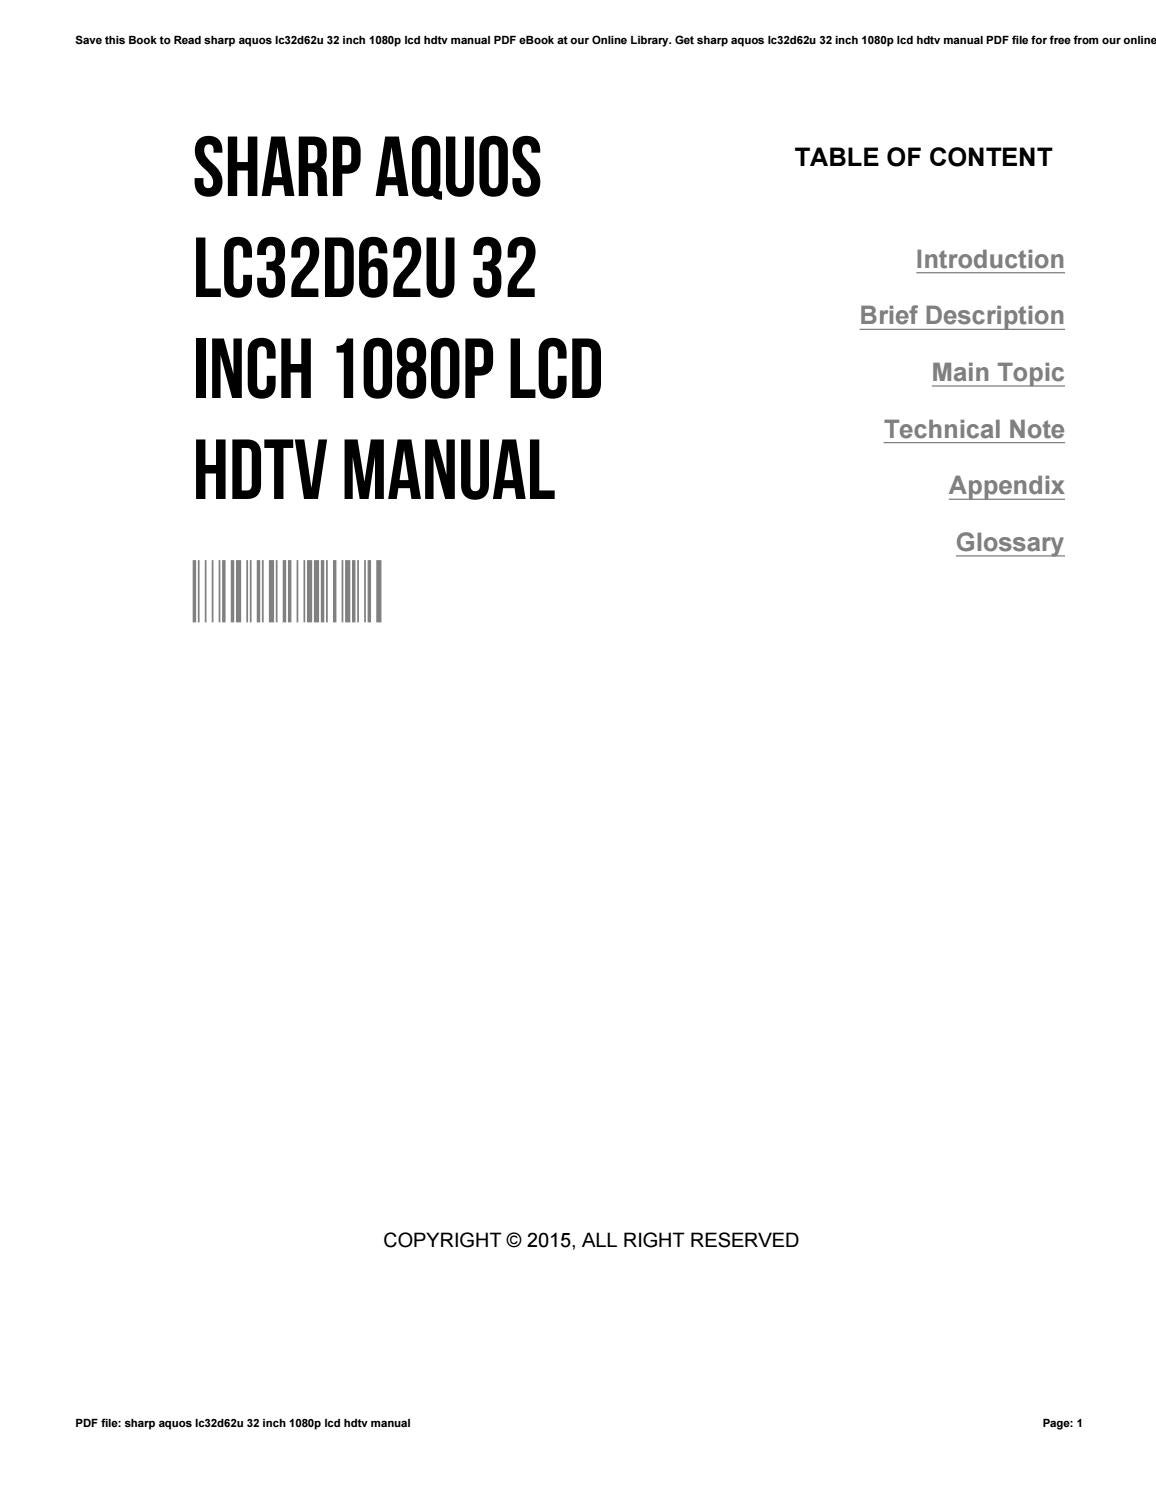 Sharp Aquos 42 User Manual